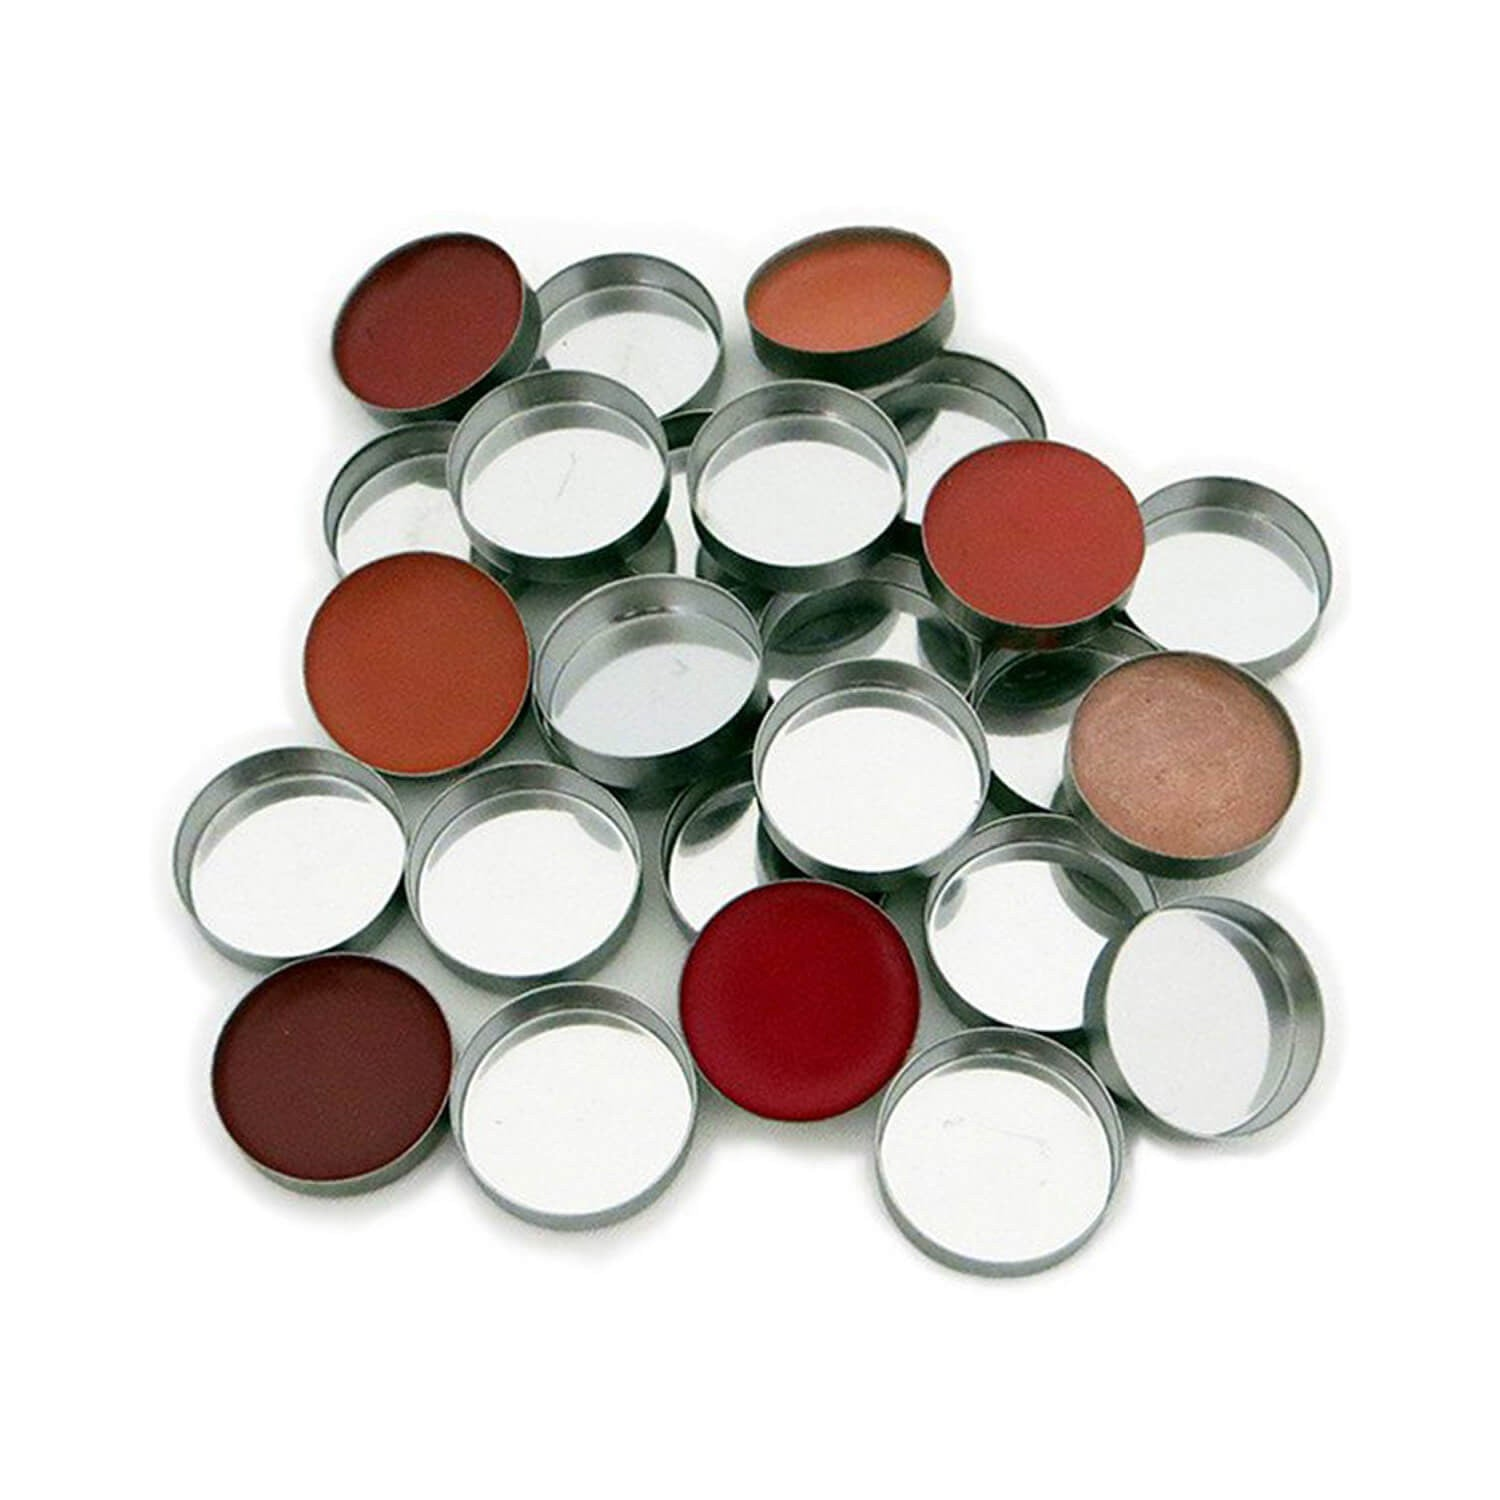 Z-palette Mini Round Empty Metal Pans